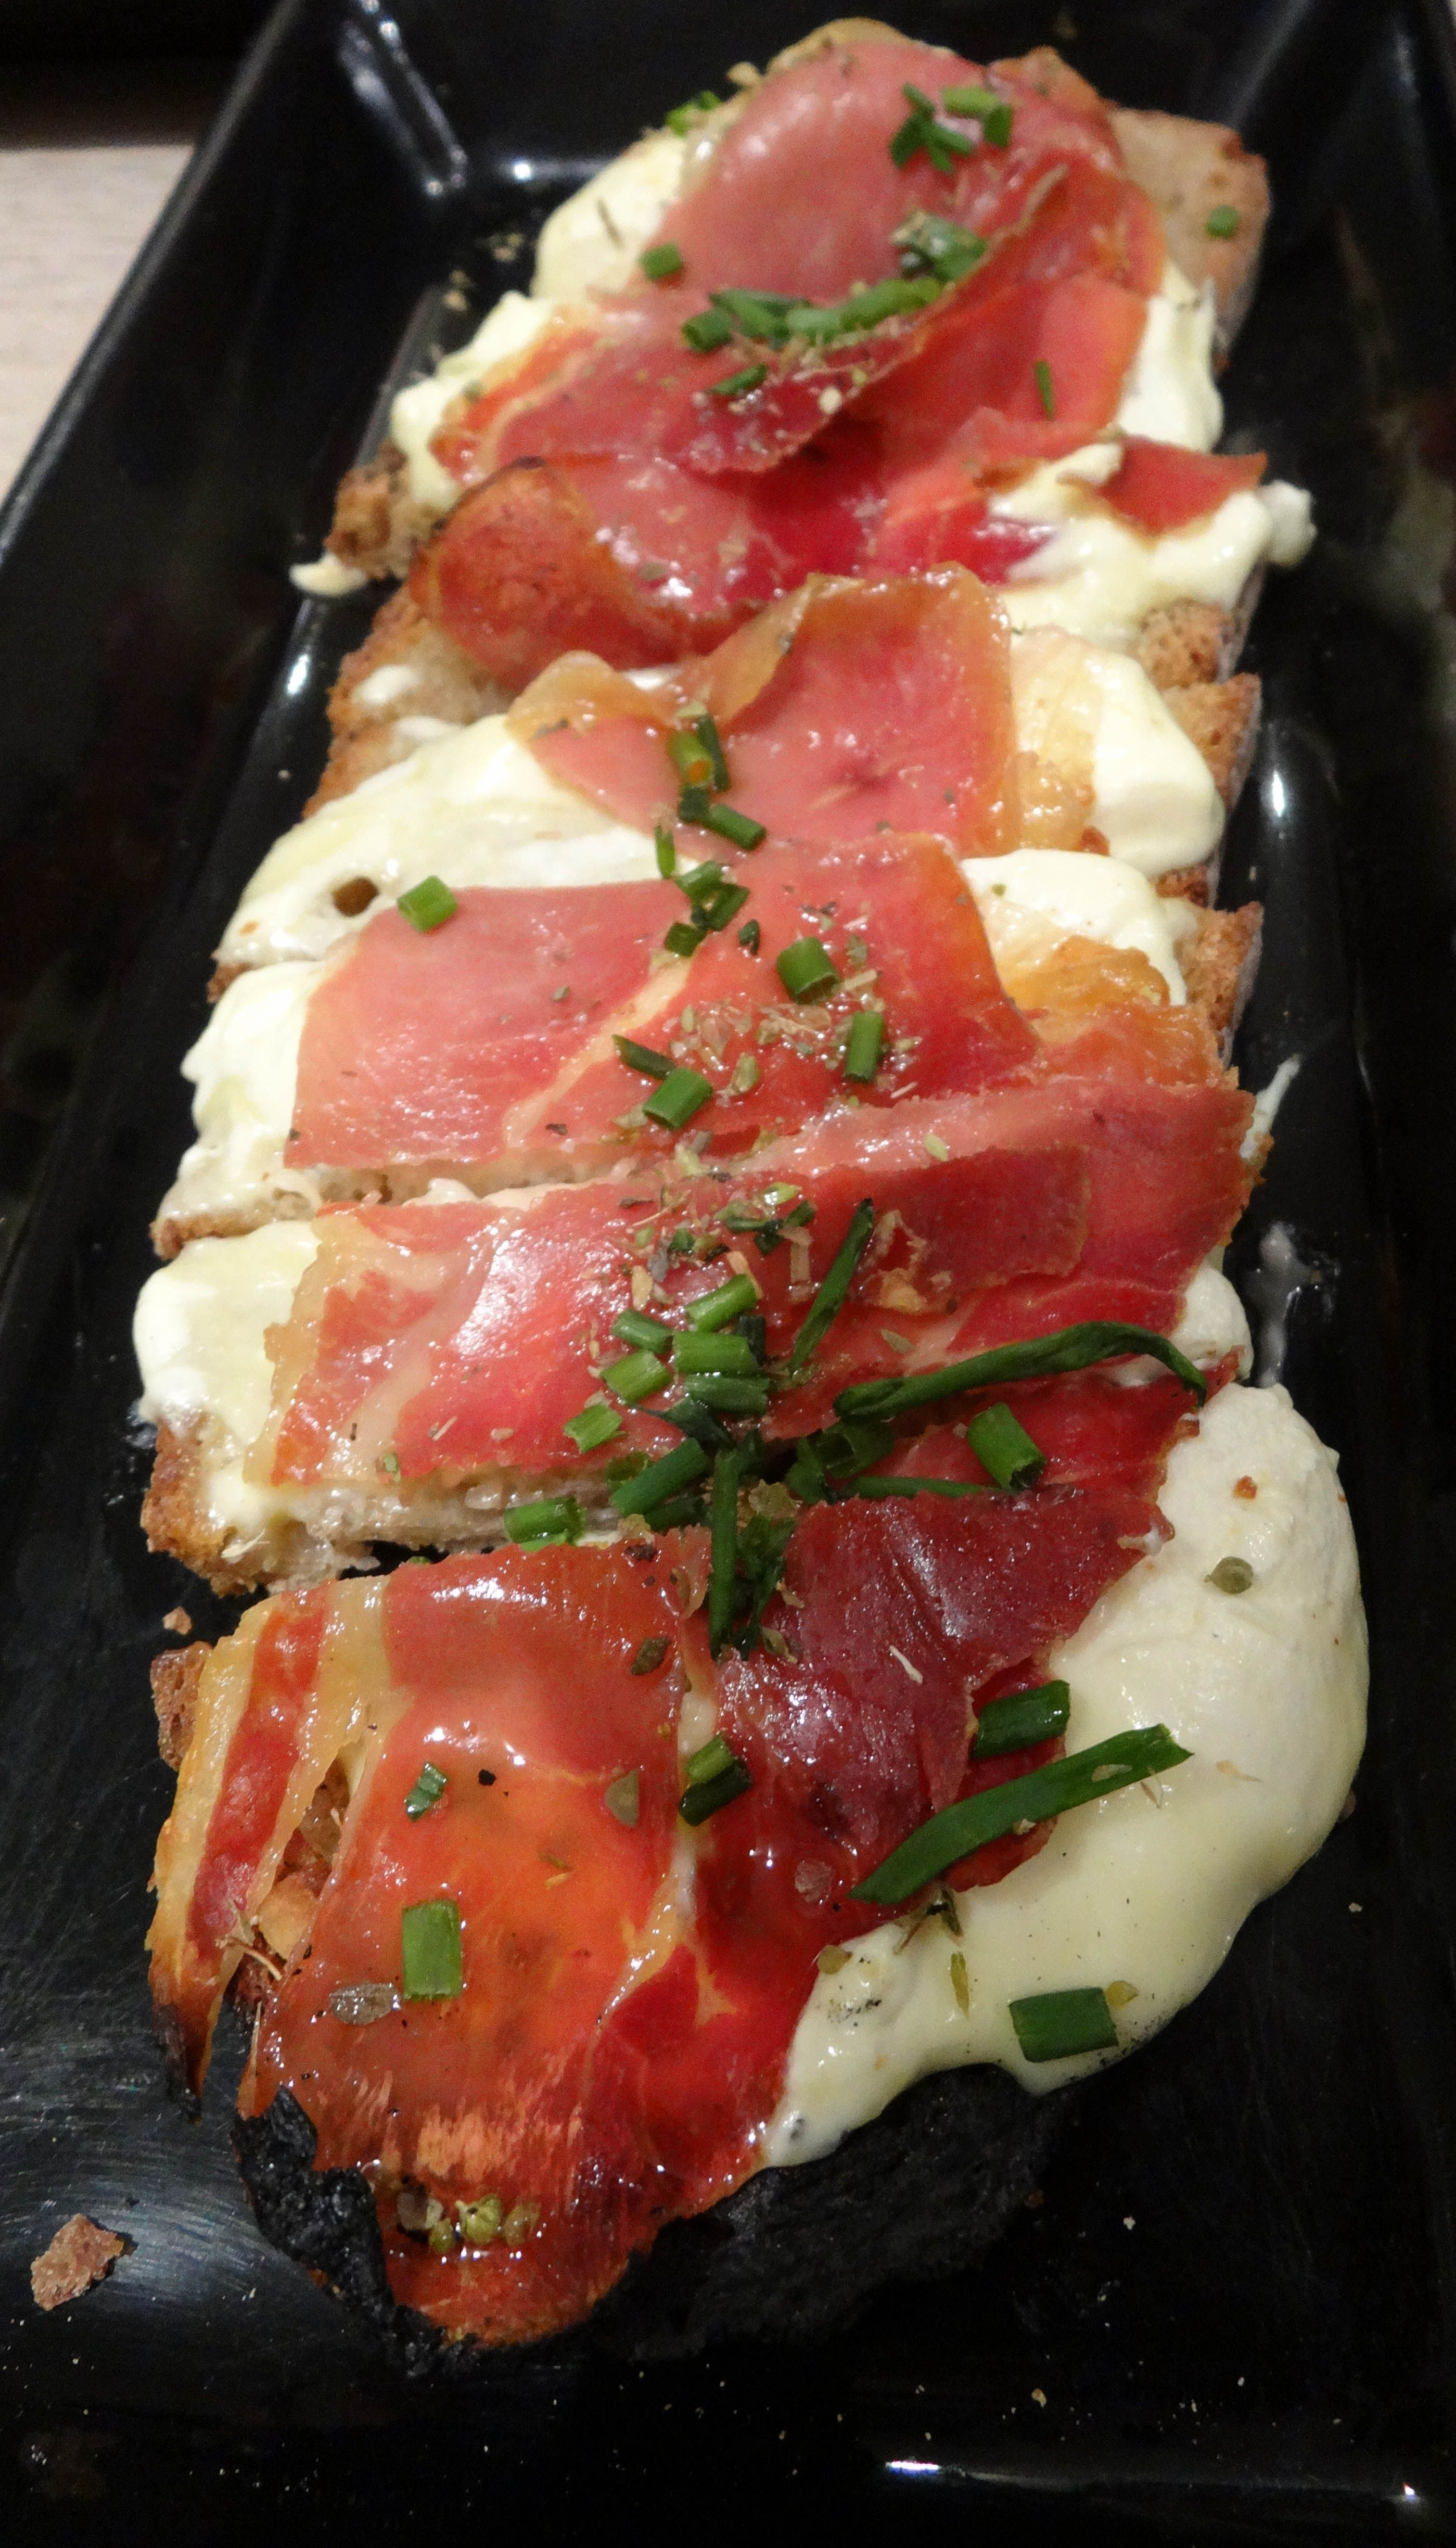 A tartine was not something we knew of prior to visiting Paris, but after trying this open-faced sandwich we were hooked.